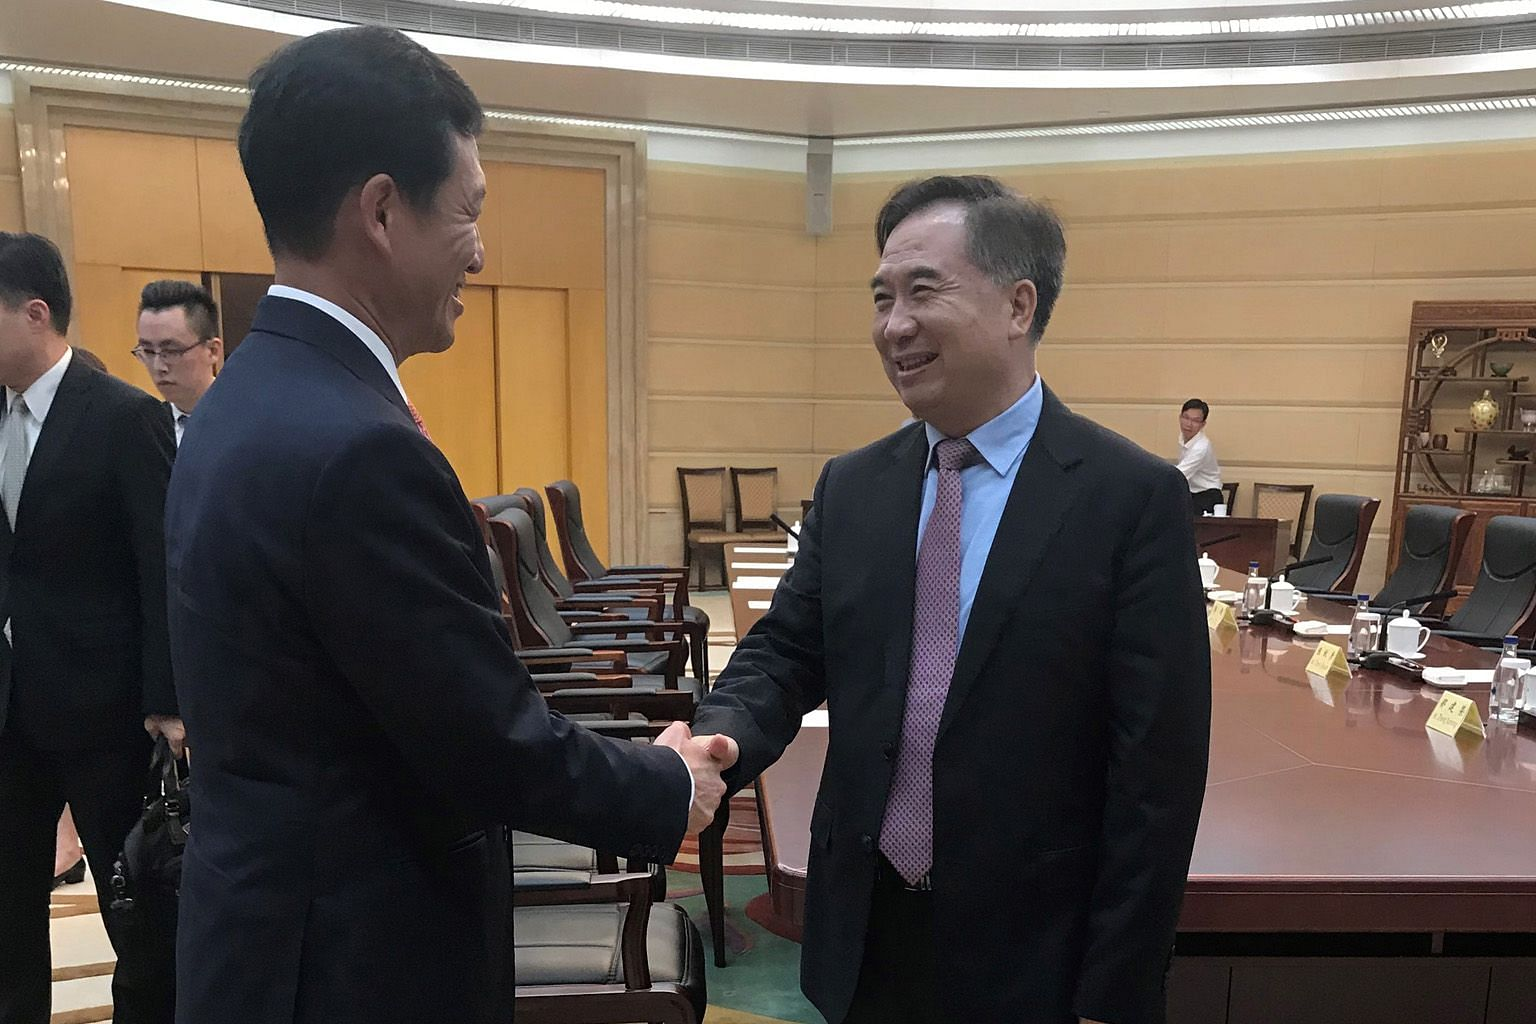 Education Minister Ong Ye Kung (left) calling on Guangdong party boss Li Xi yesterday. Mr Ong is visiting southern Guangdong, where he tested the latest transport links in the Greater Bay Area. The area is positioned as part of a strategic plan for C